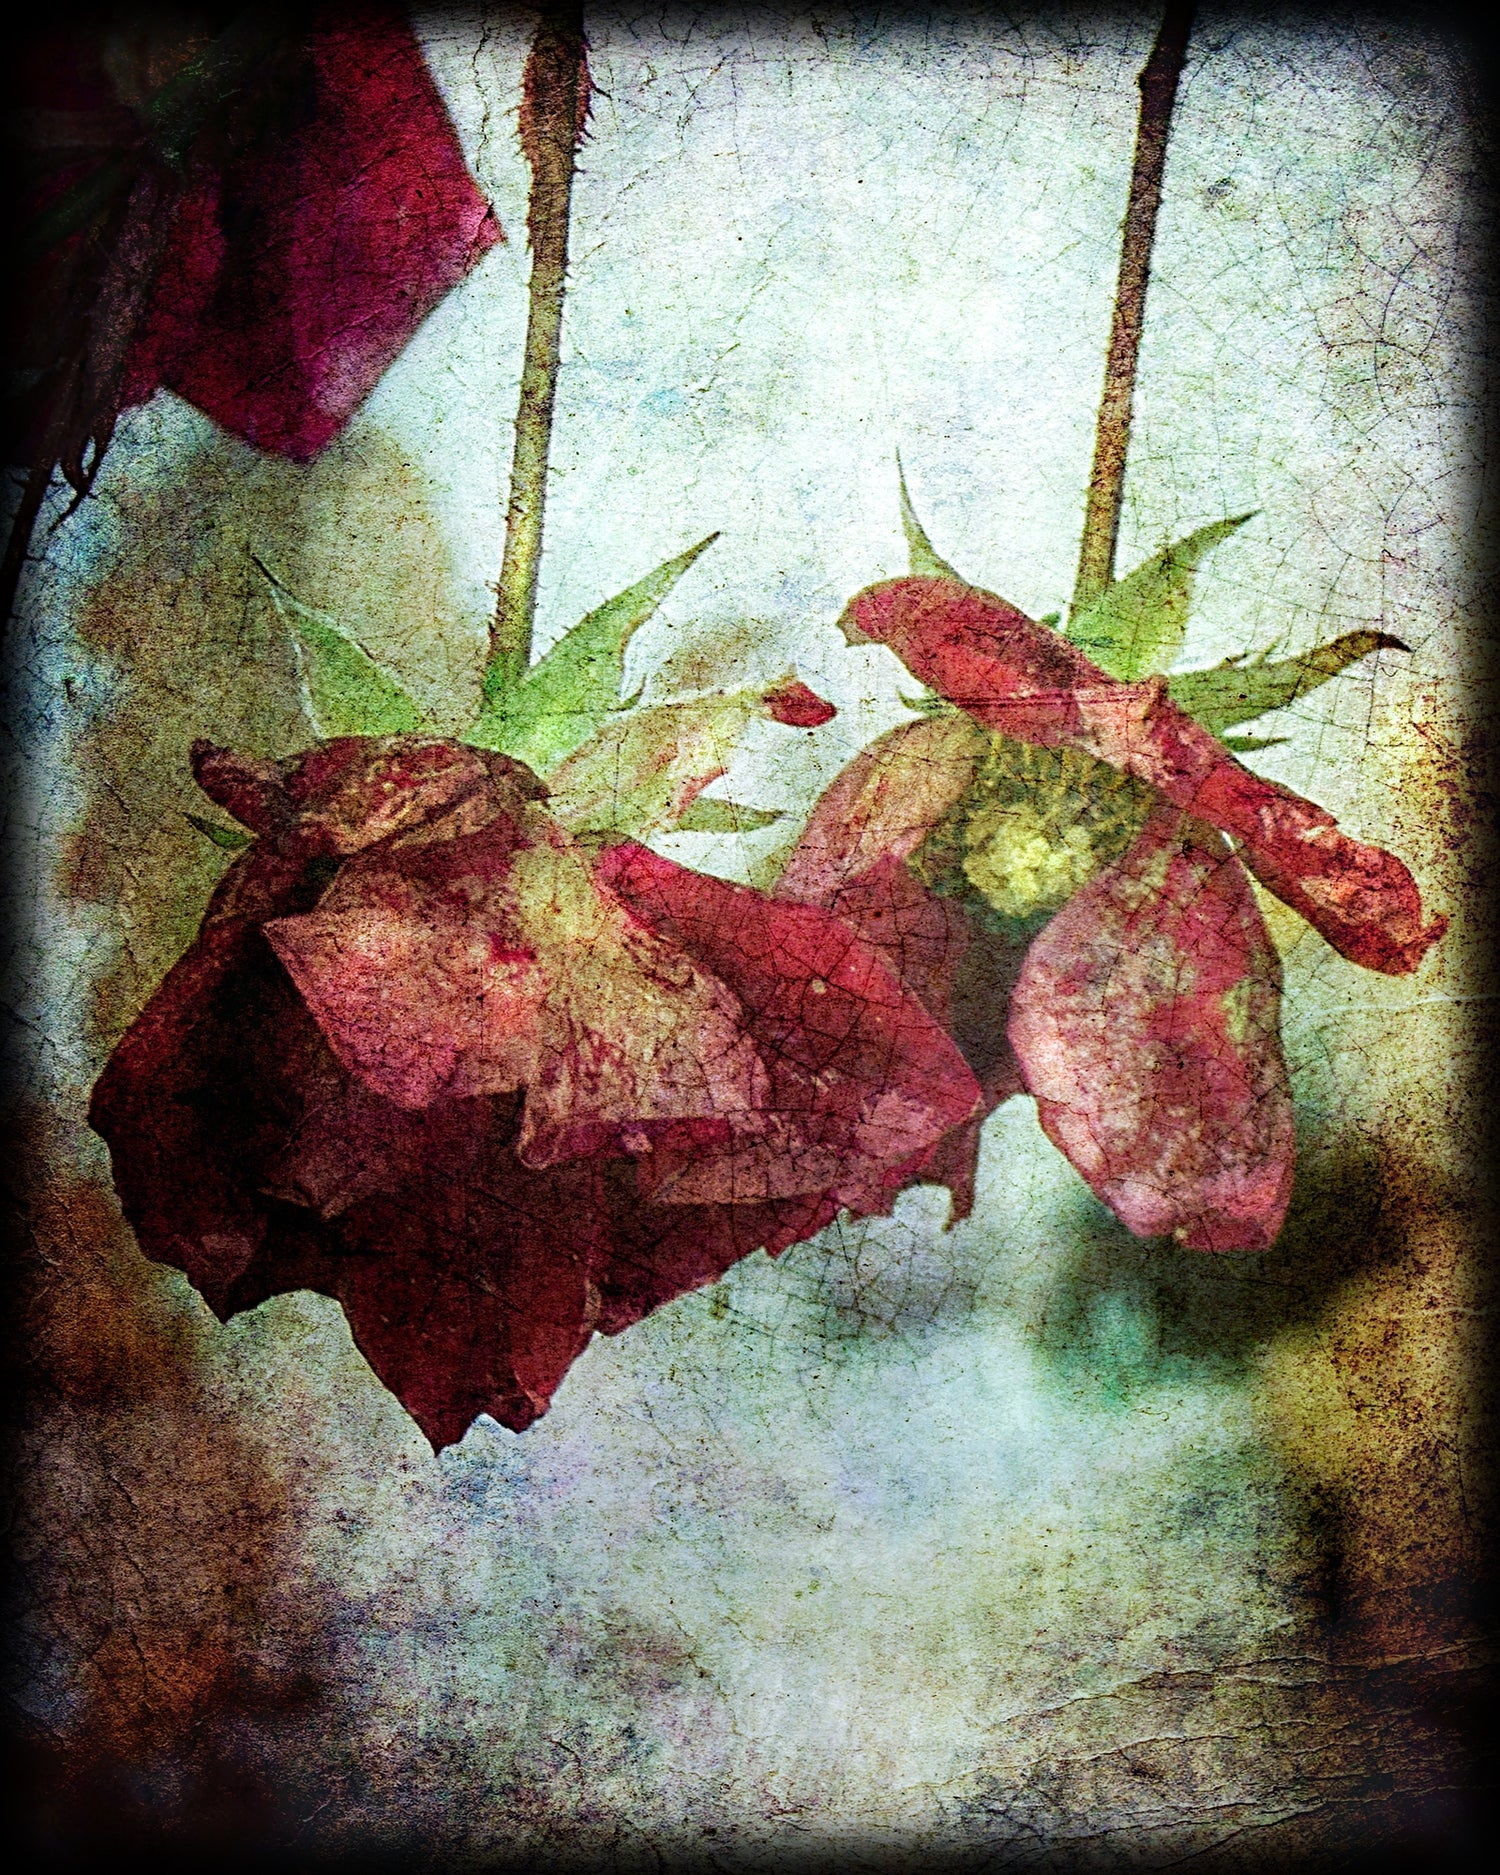 textured fine art photo of a wilting red dog rose